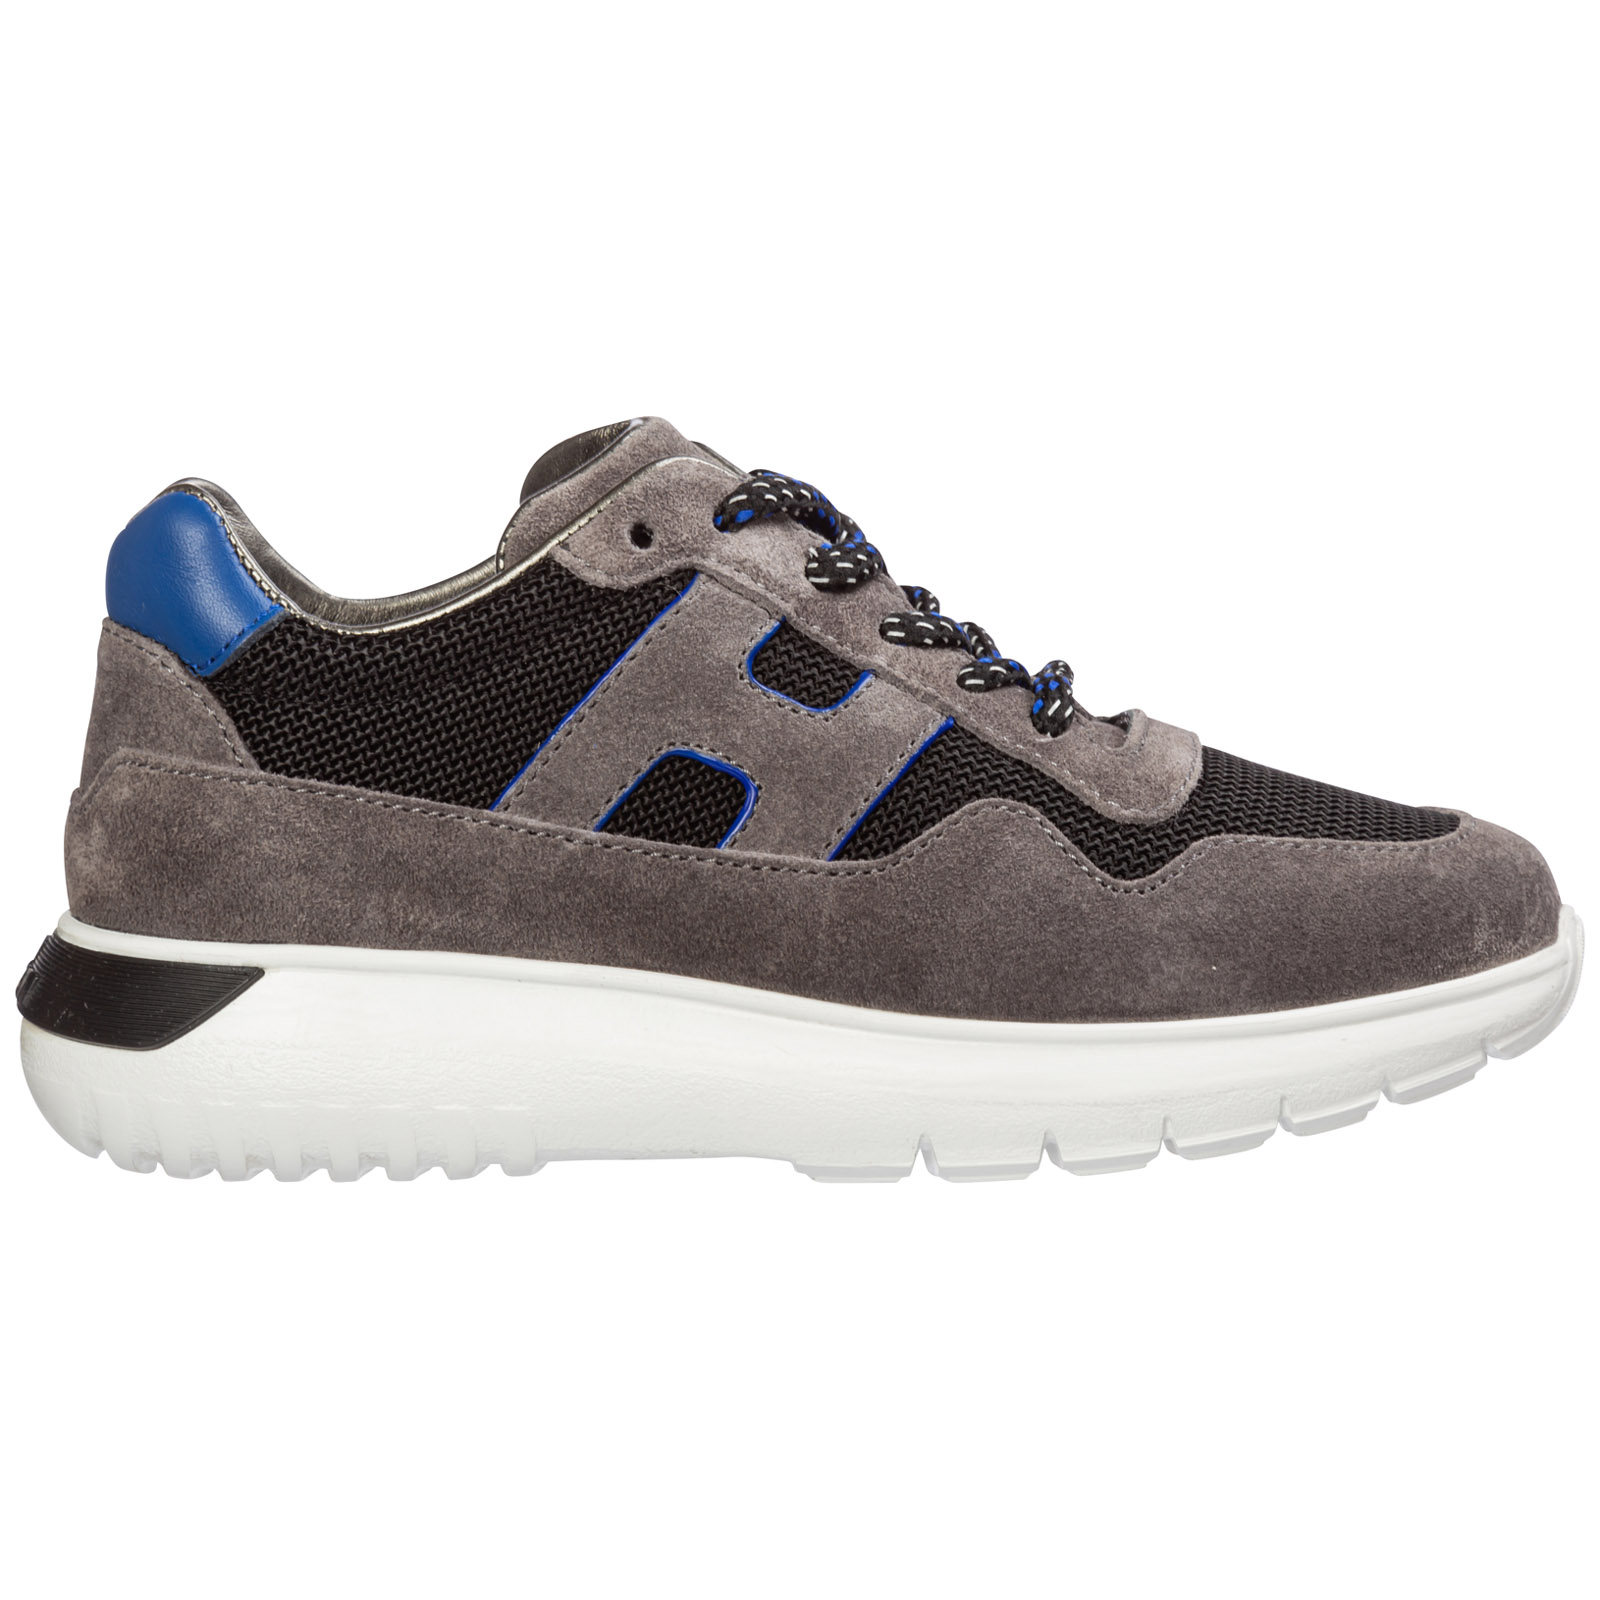 Hogan Sneakers BOYS SHOES CHILD SNEAKERS SUEDE LEATHER INTERACTIVE3